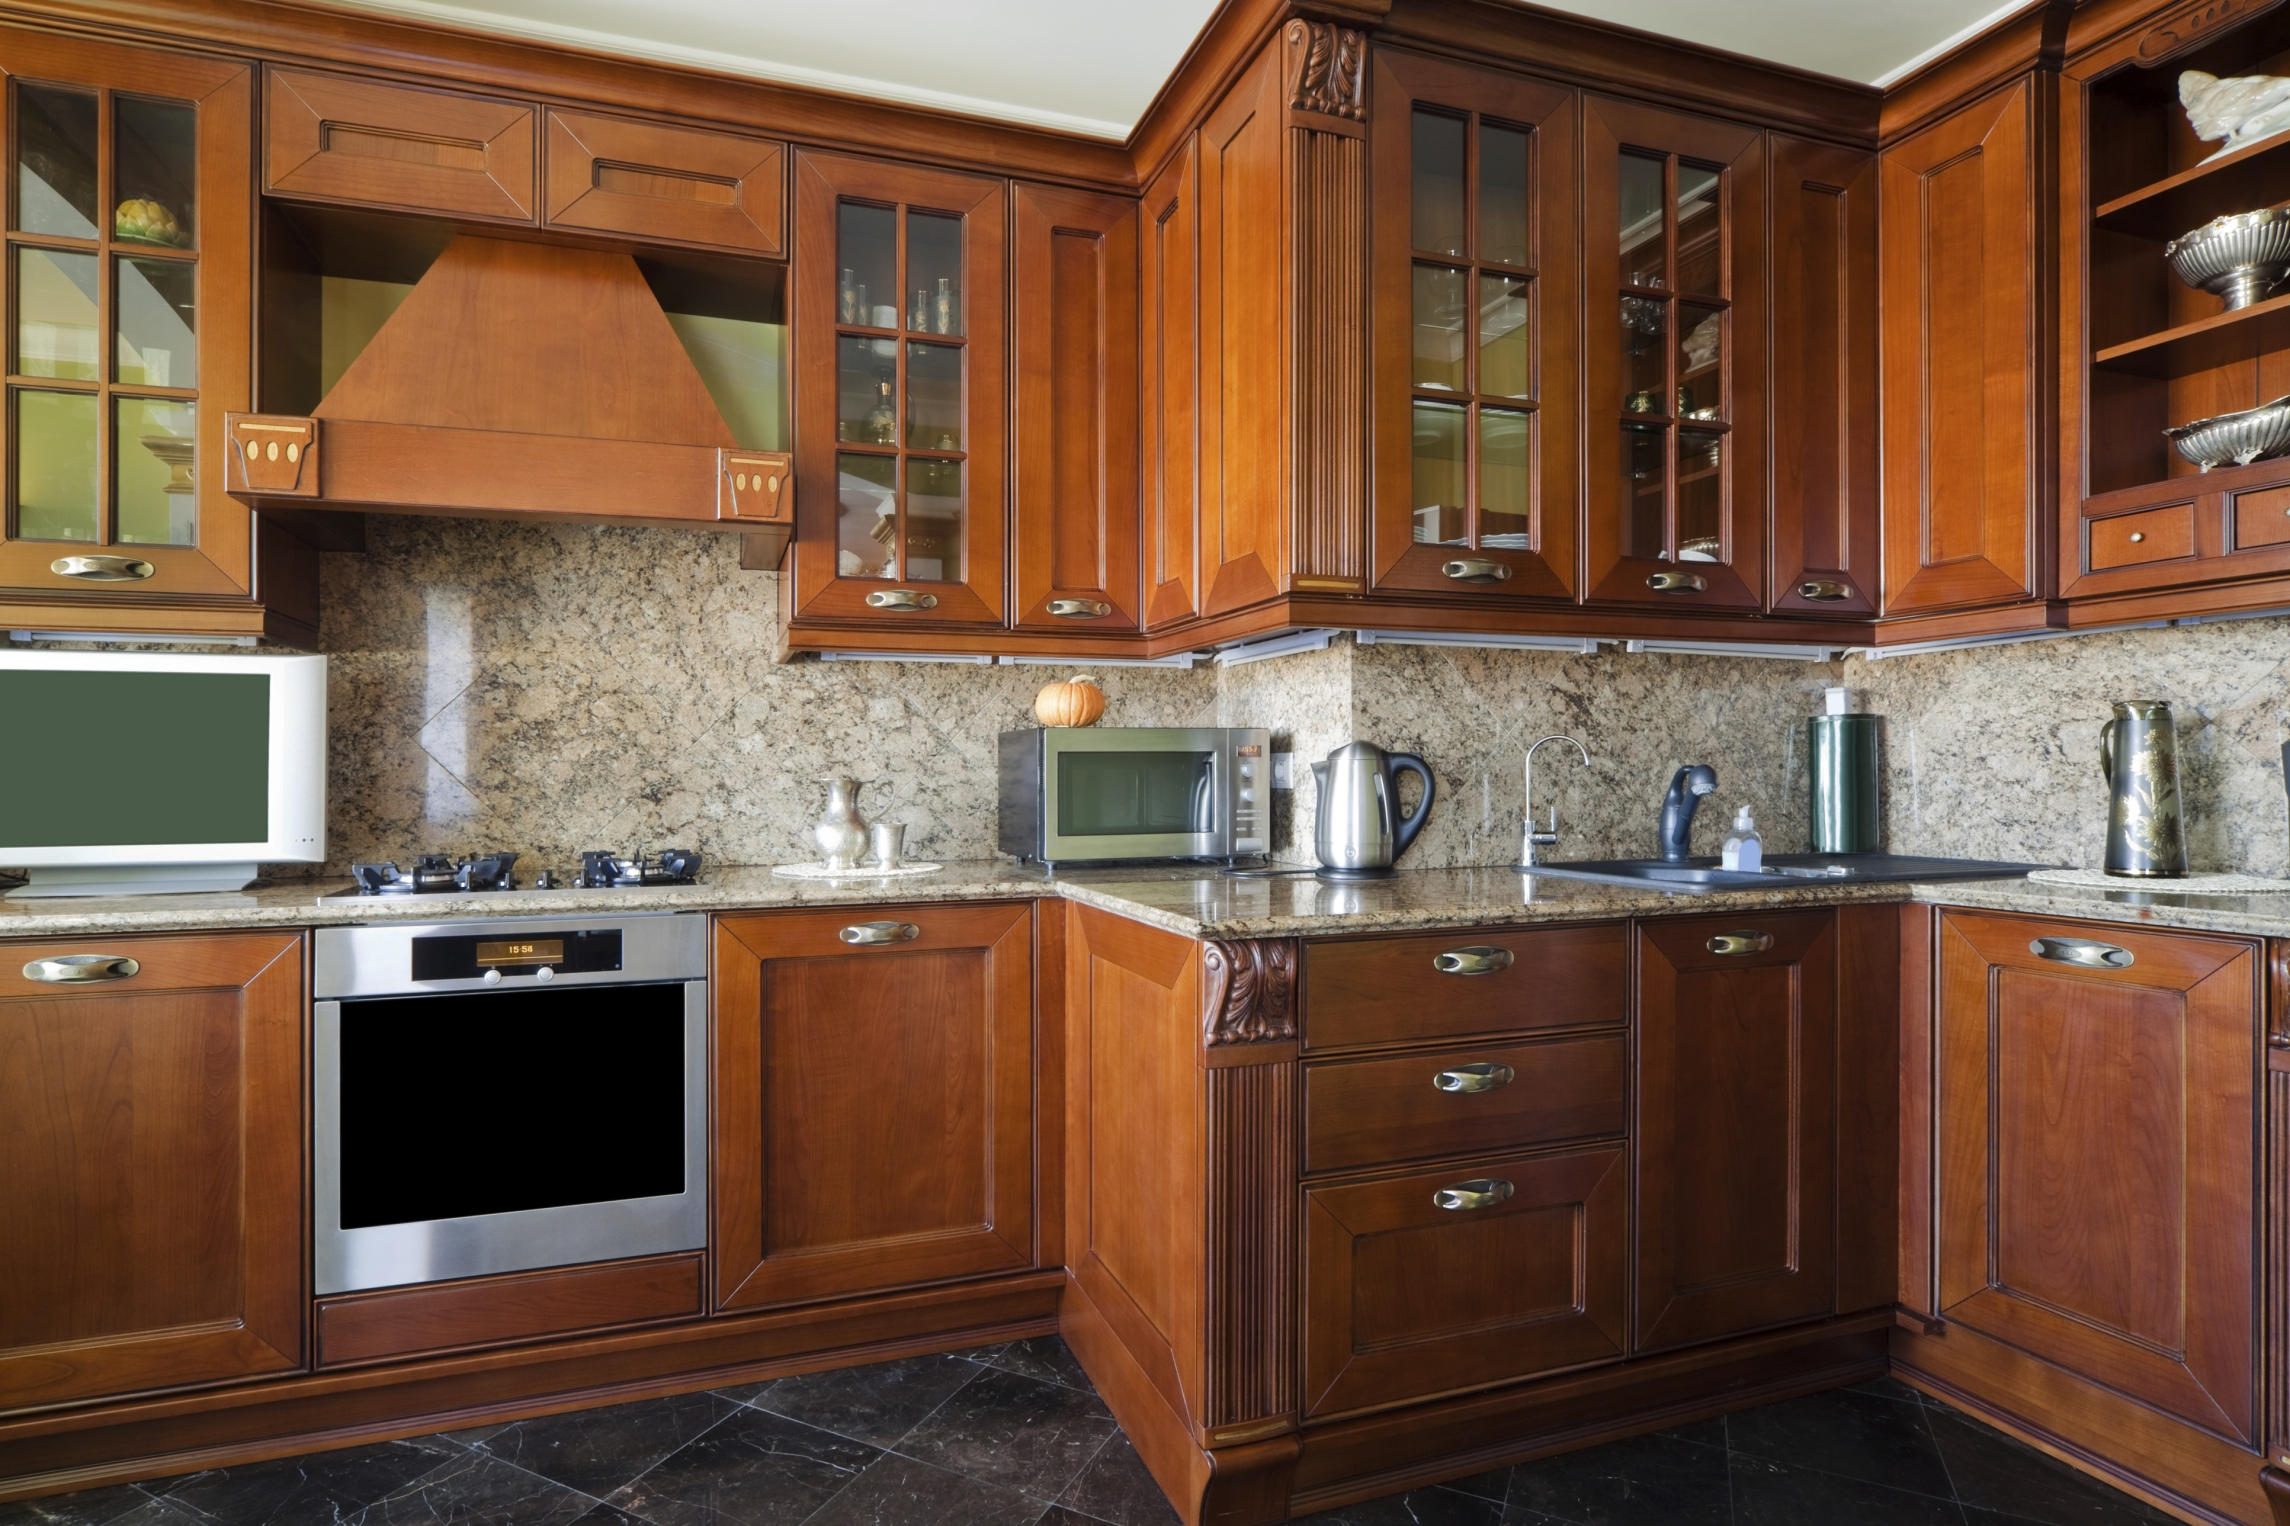 Kitchen Cabinet Types Pictures2290 X 1526